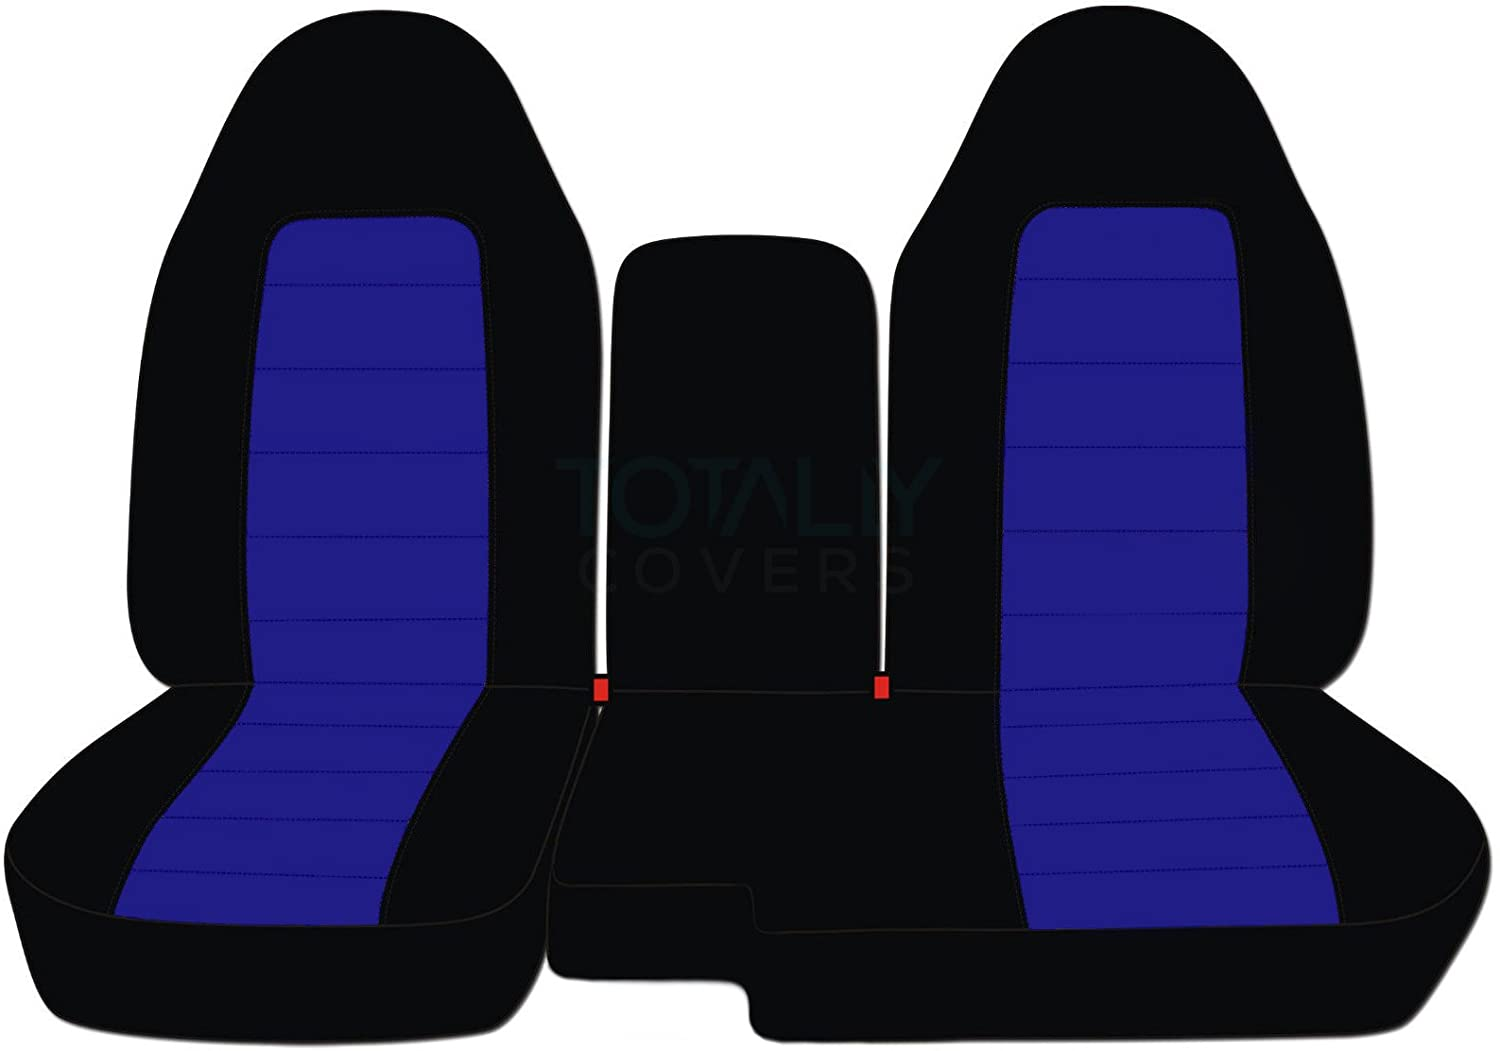 2005 2006 2007 2008 2009 2010 2011 60//40 Split Bench 21 Colors Totally Covers Fits 2004-2012 Ford Ranger//Mazda B-Series Two-Tone Truck Seat Covers with Center Console//Armrest Cover: Black /& Brown